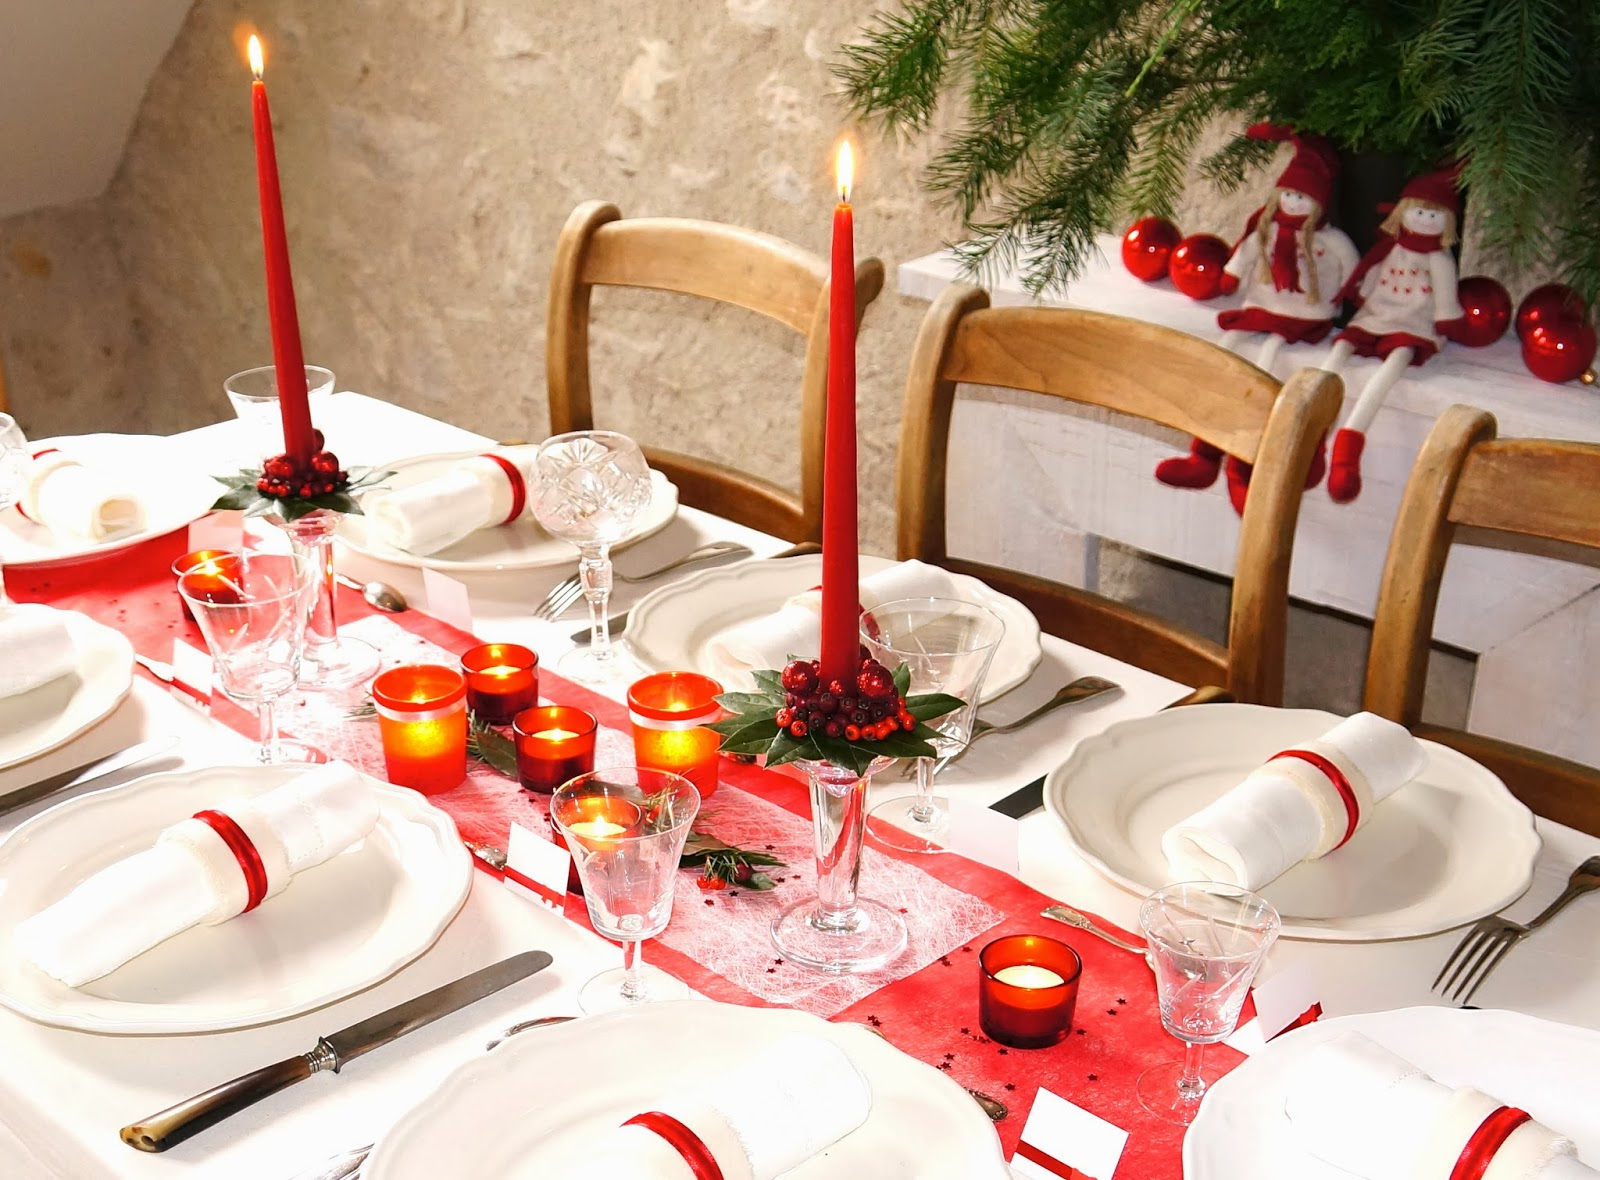 Ma boutique d co table d coration de table d coration - Idee de decoration de table pour noel ...